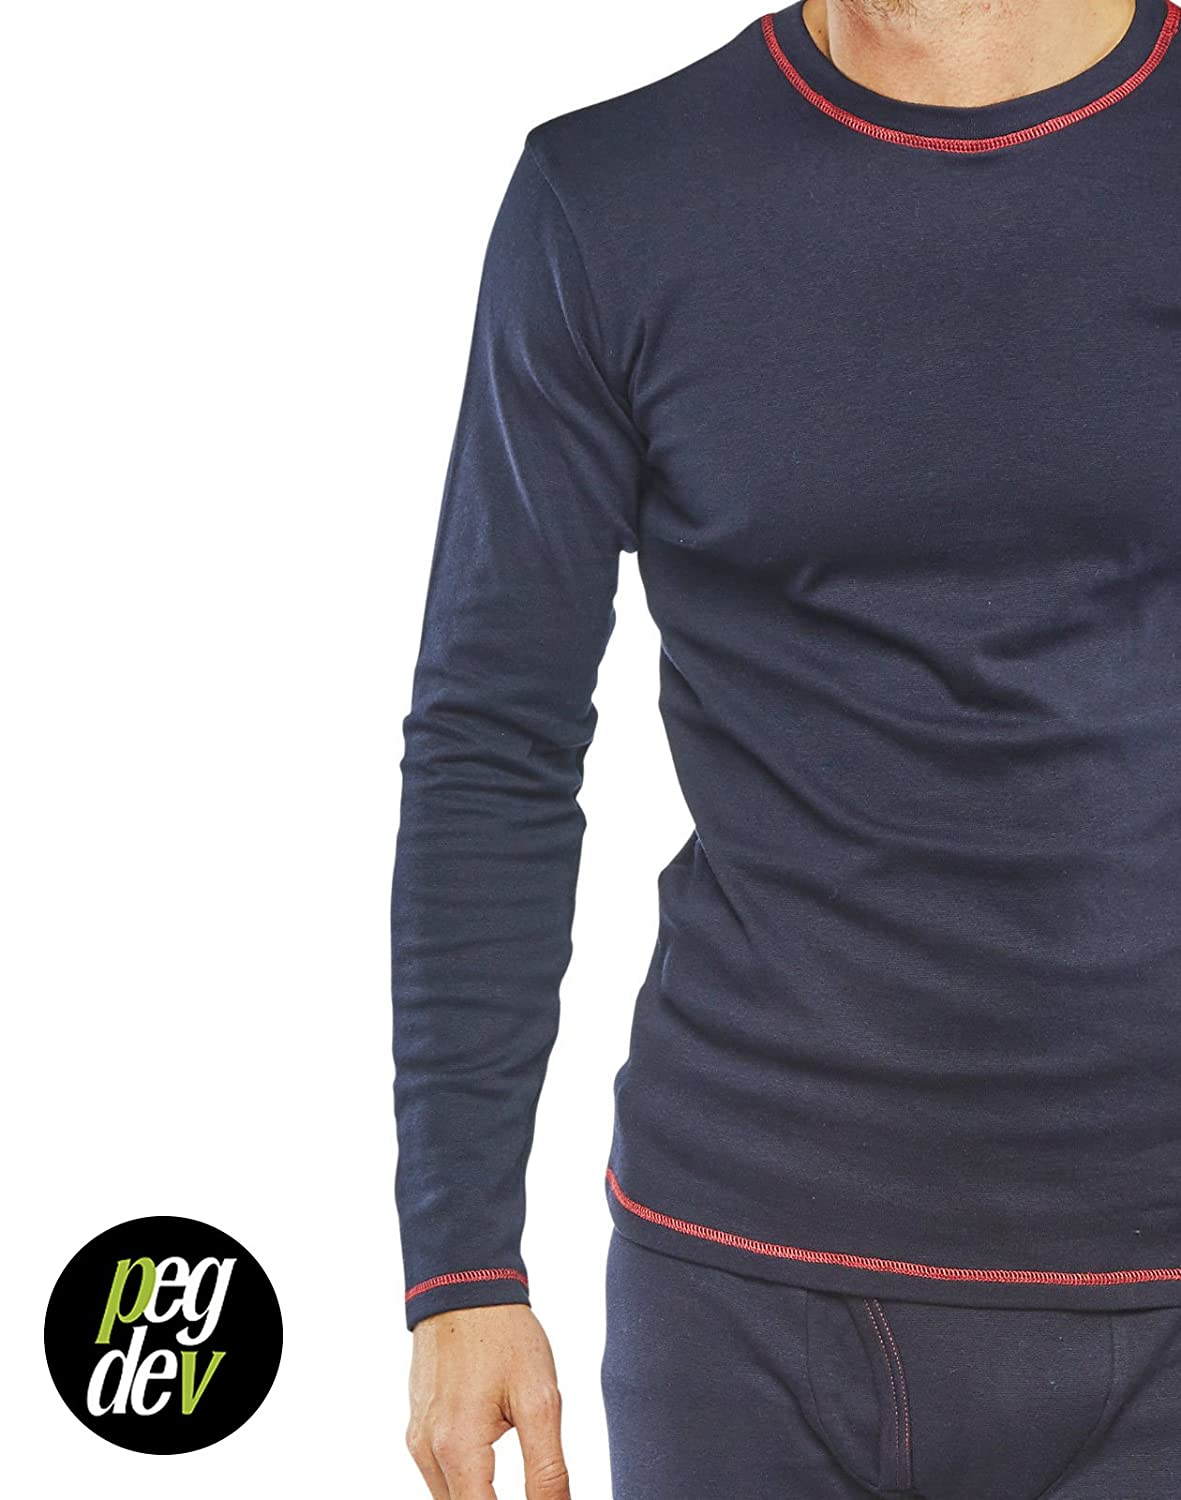 49d050e8761b PDL Fire Retardant Anti-Static Arc Welding Long Sleeved Navy T-Shirt Under  Garment  Amazon.co.uk  Clothing